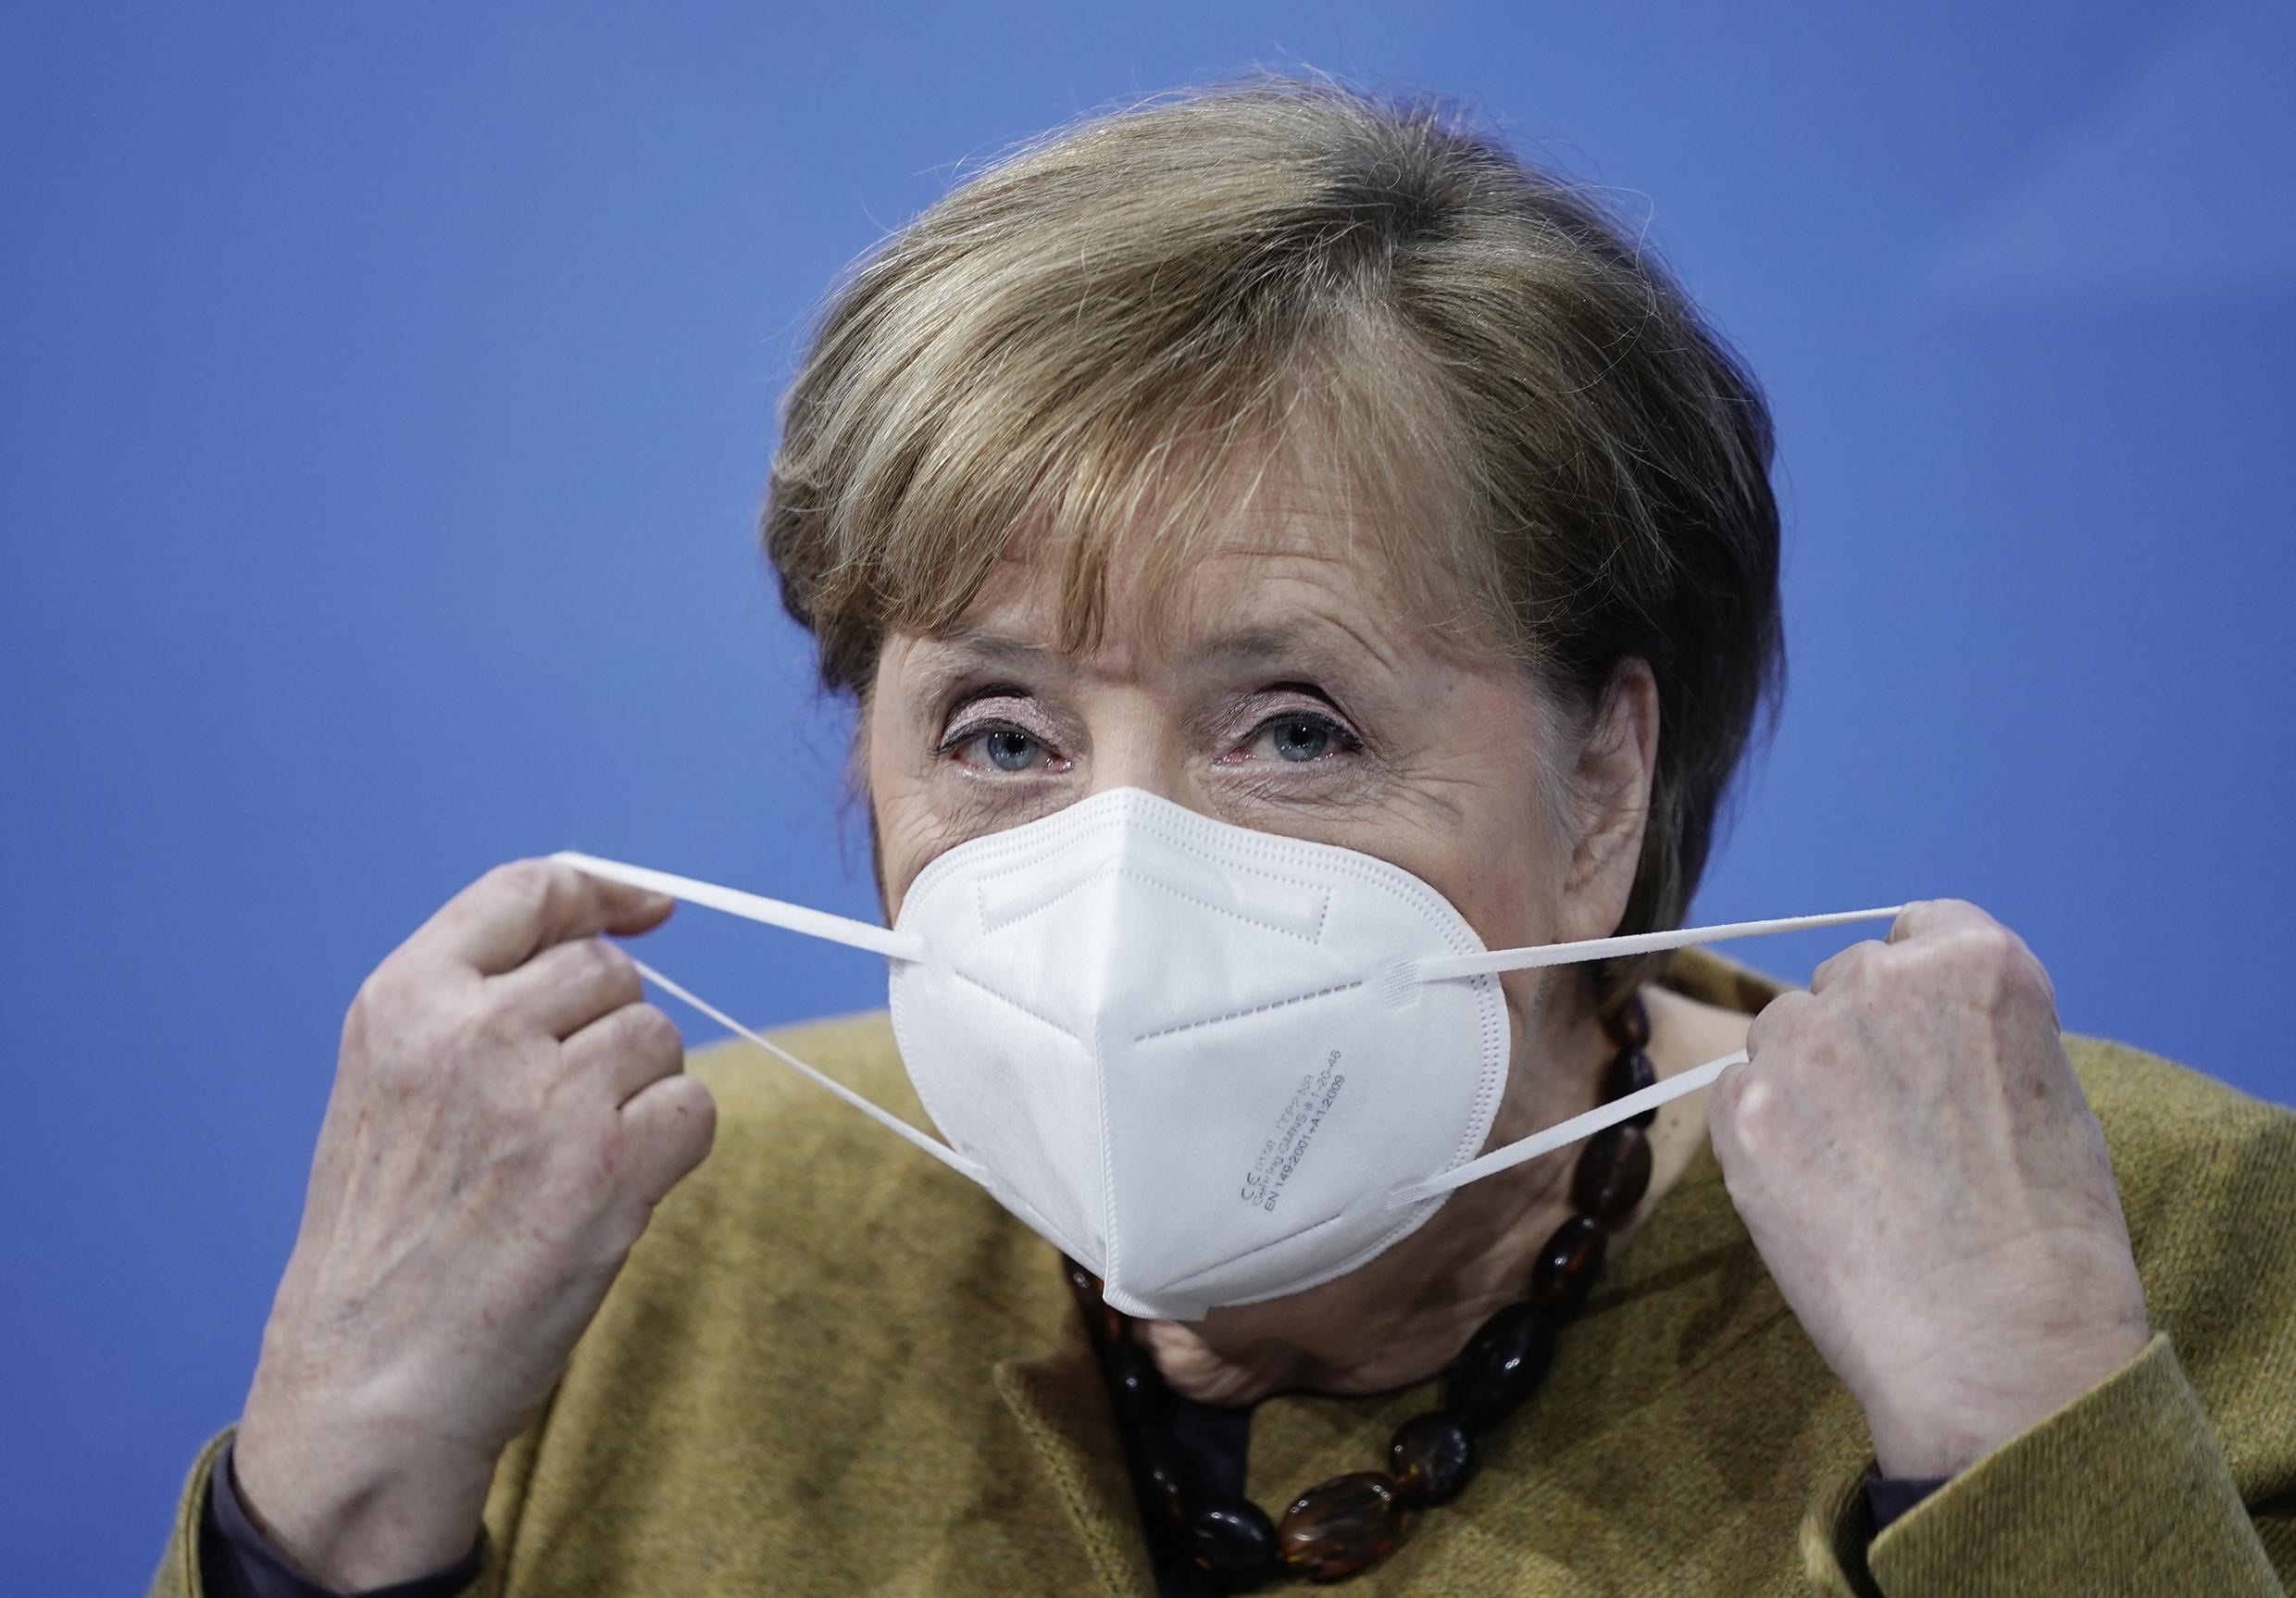 German Chancellor Angela Merkel removes a face mask as she arrives to address a press conference following videoconference talks with the prime ministers of the German states on the extension of the current partial blockade, at the Chancellery in Berlin on 5 January 2021.